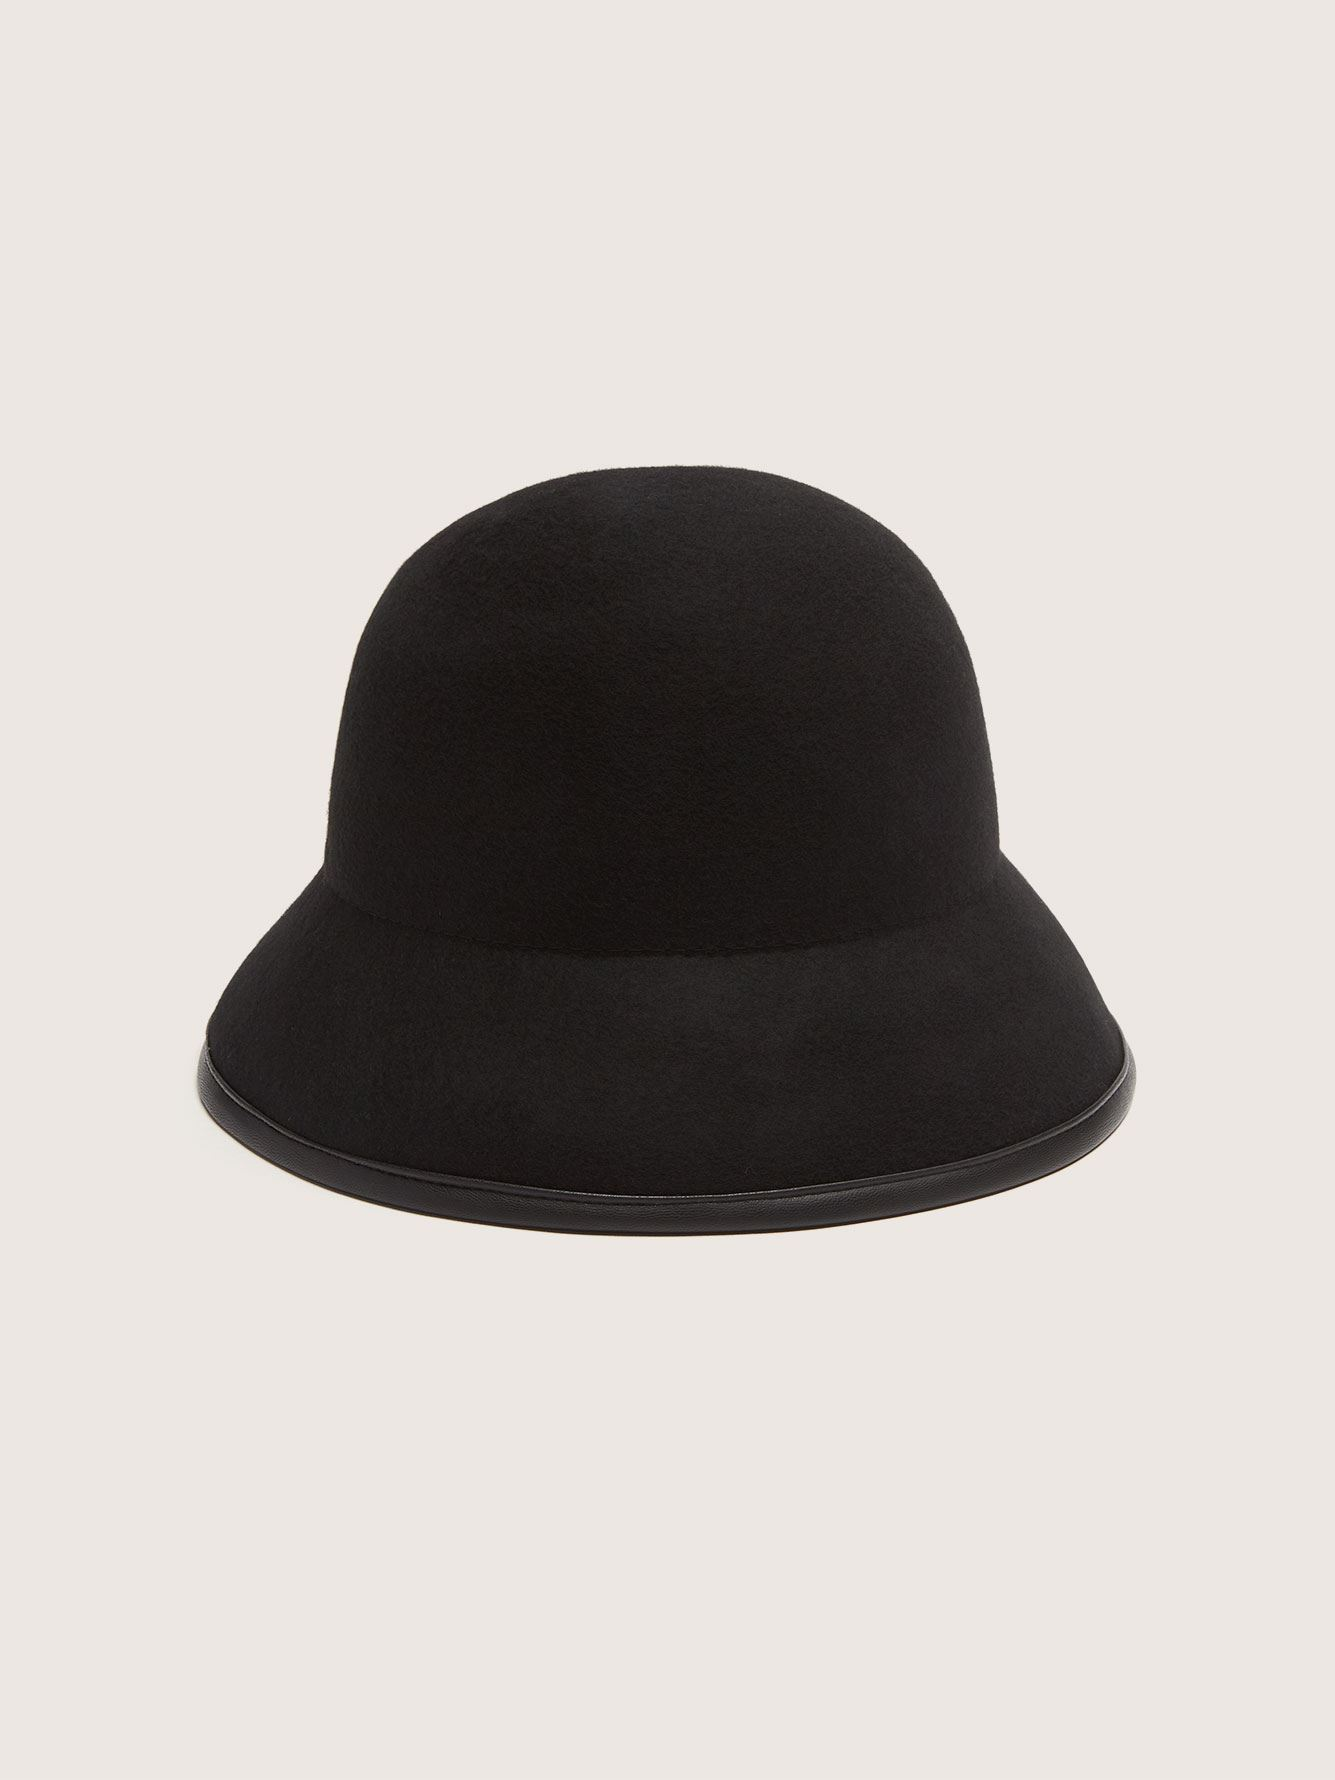 Felt Cloche Hat with Leather Details - Canadian Hat